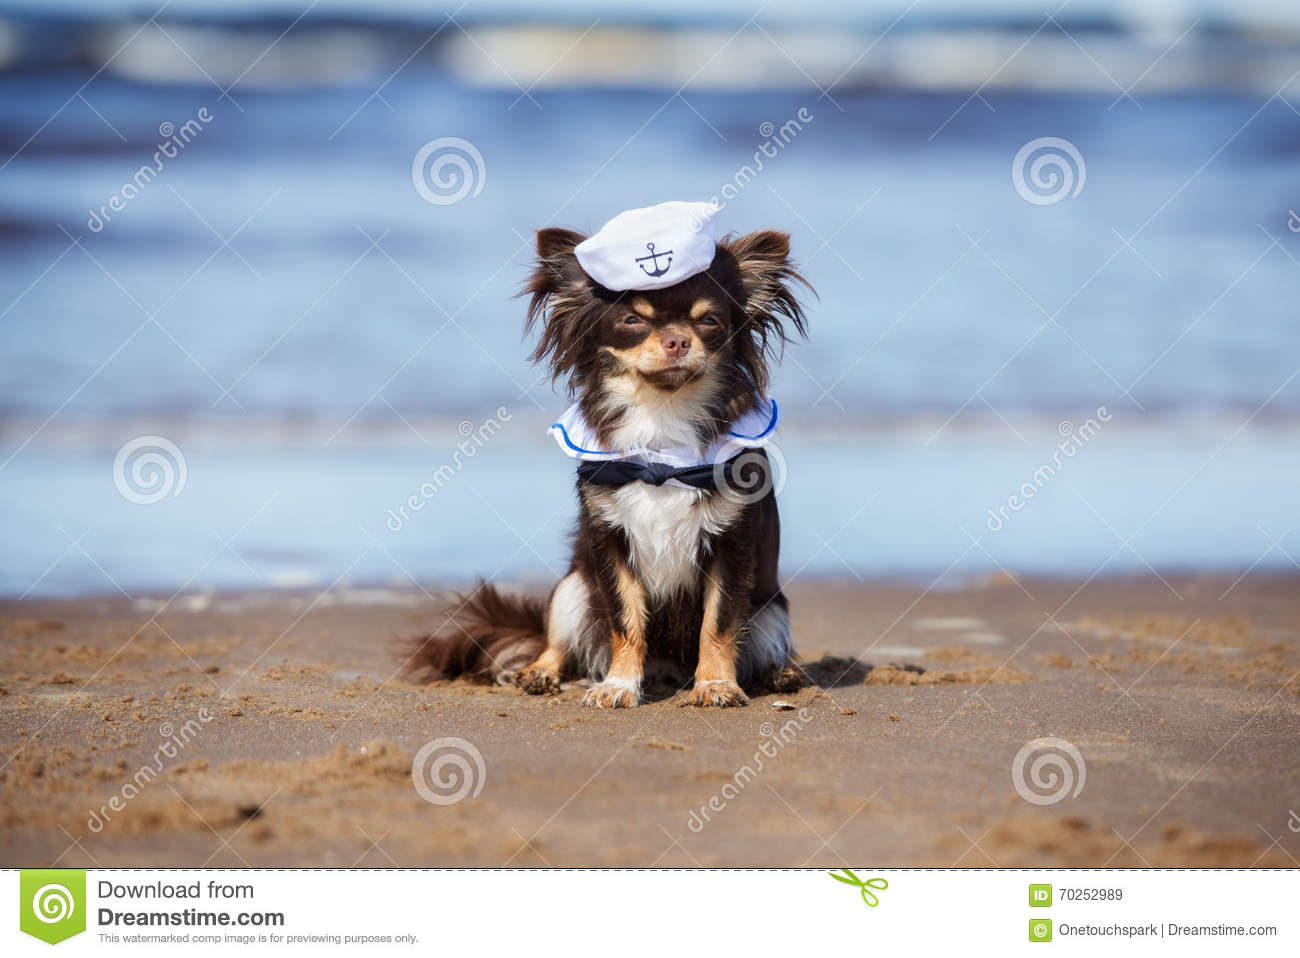 Chihuahua Dog In A Sailor Hat Sitting